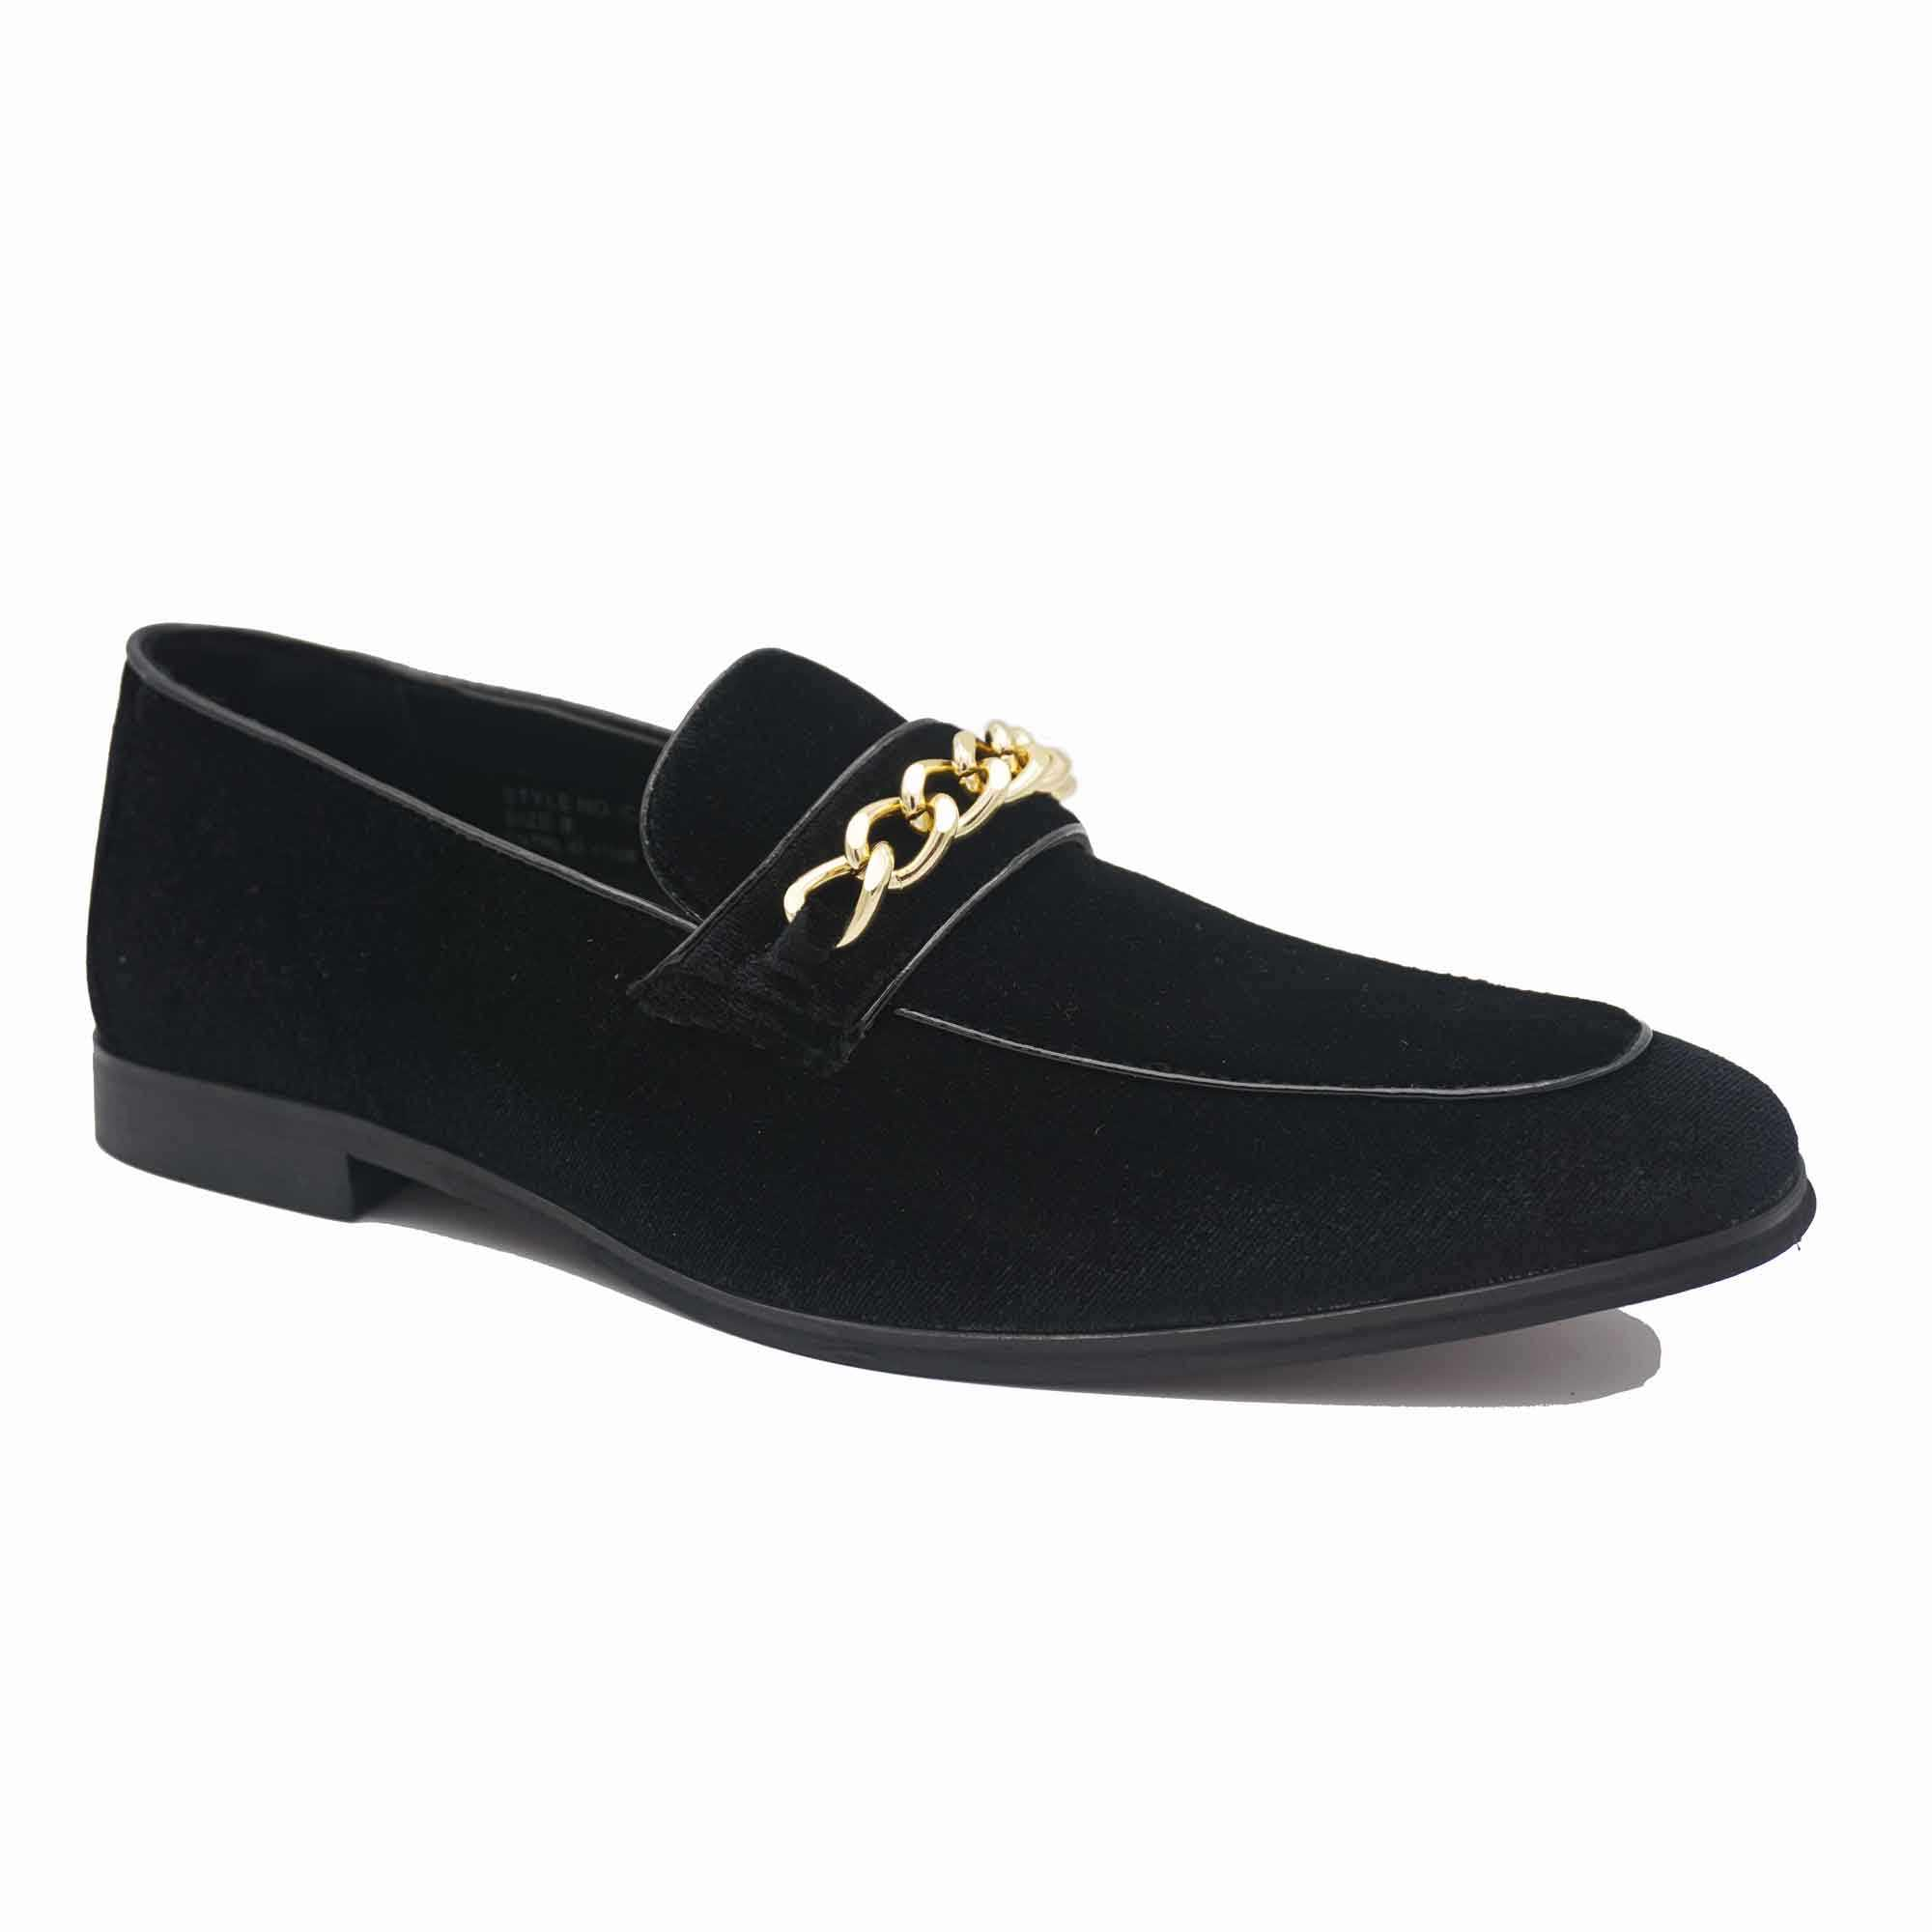 China Wholesale New Arrival Cheap Prices velvet Loafer Mens Casual Dress Shoes